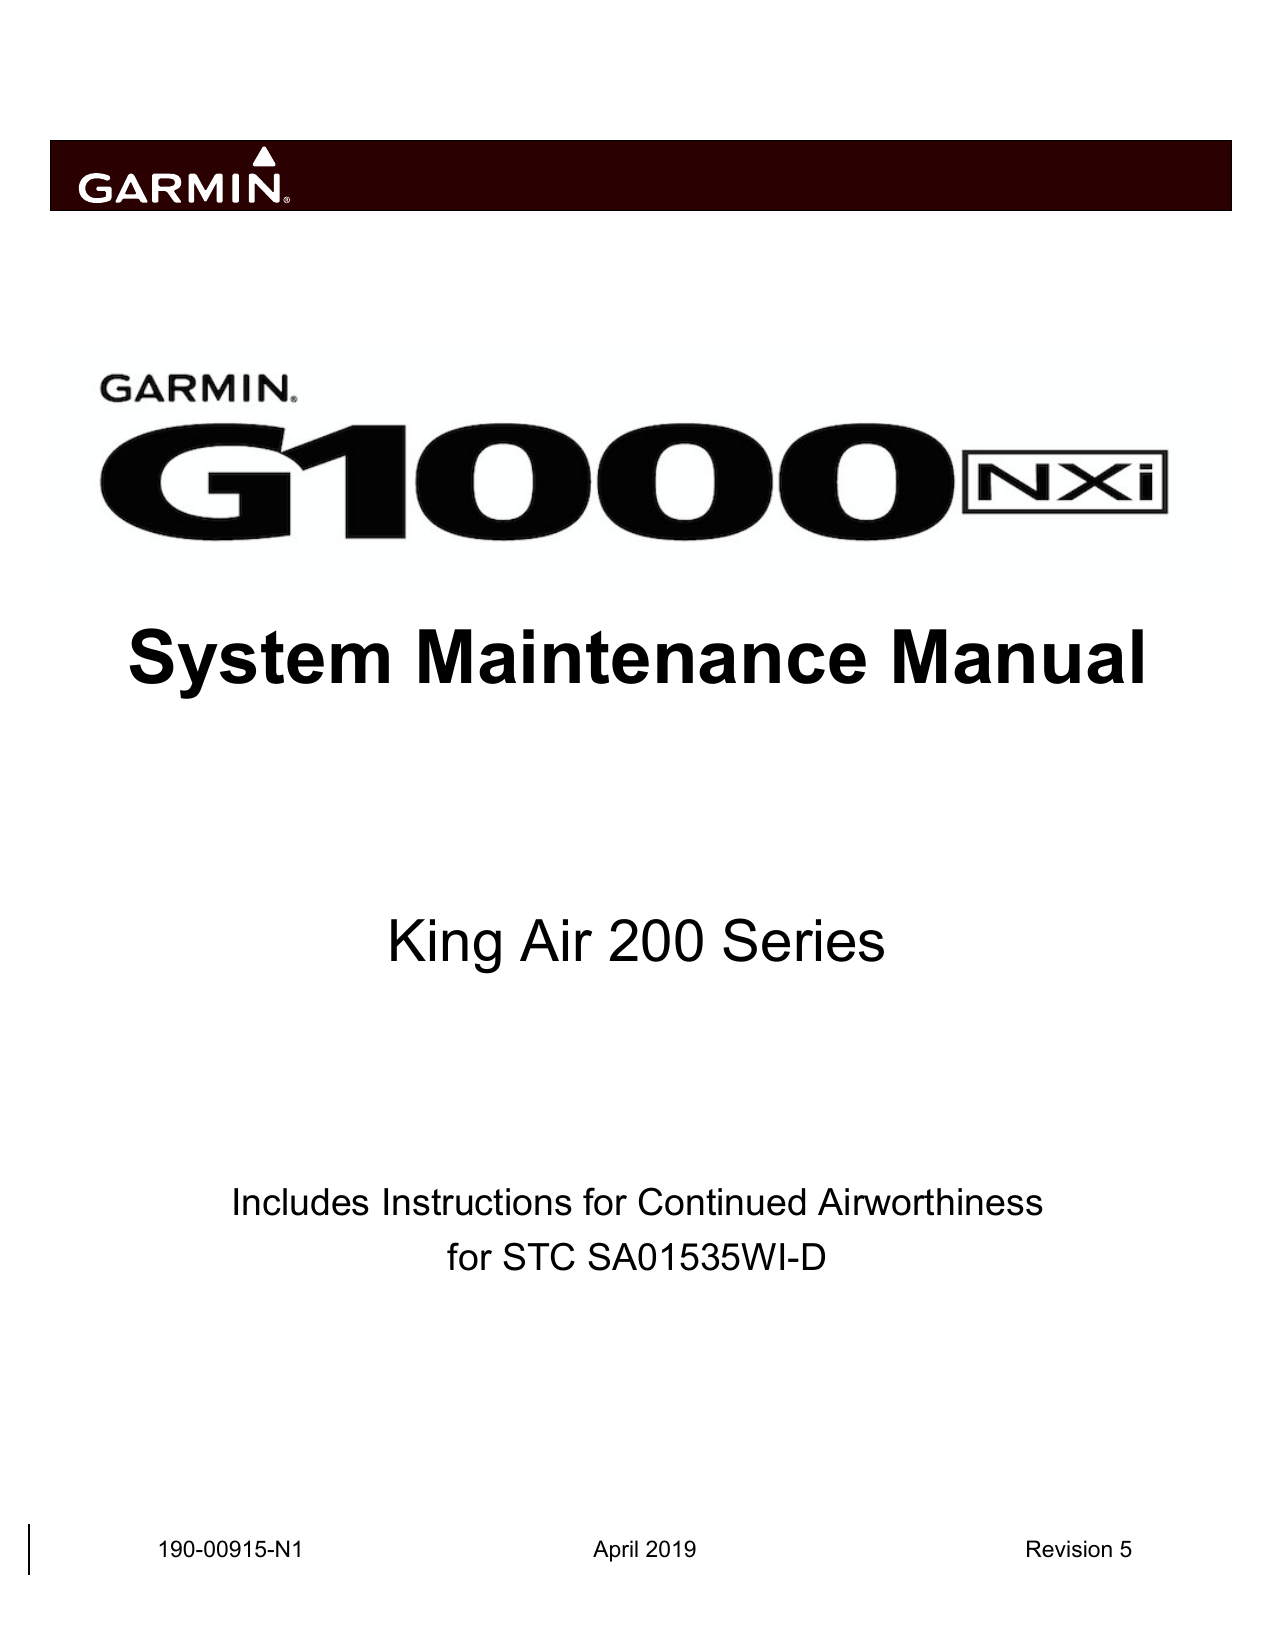 Garmin G1000 NXi: Beechcraft King Air 200/B200 G1000 NXi